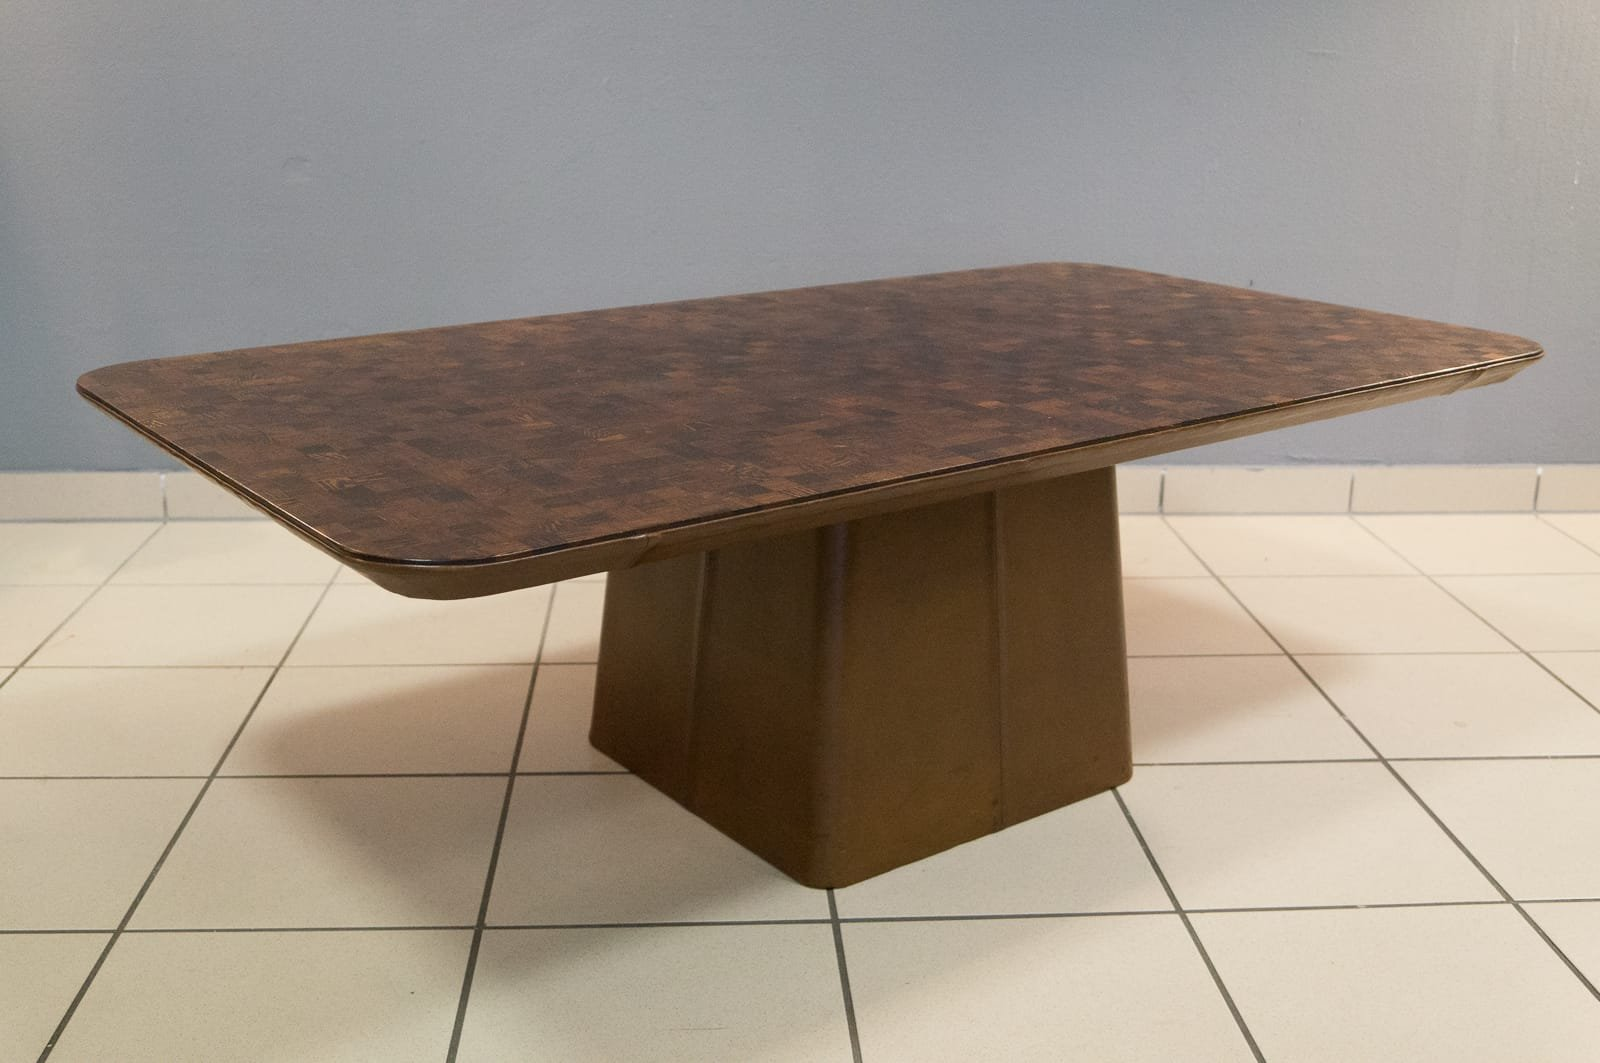 this high master parmentierxgiobagnara the tables by sale part furniture at id ivory cocktail in leather collection table is stool small phane scala st designed f coffee nappa of for